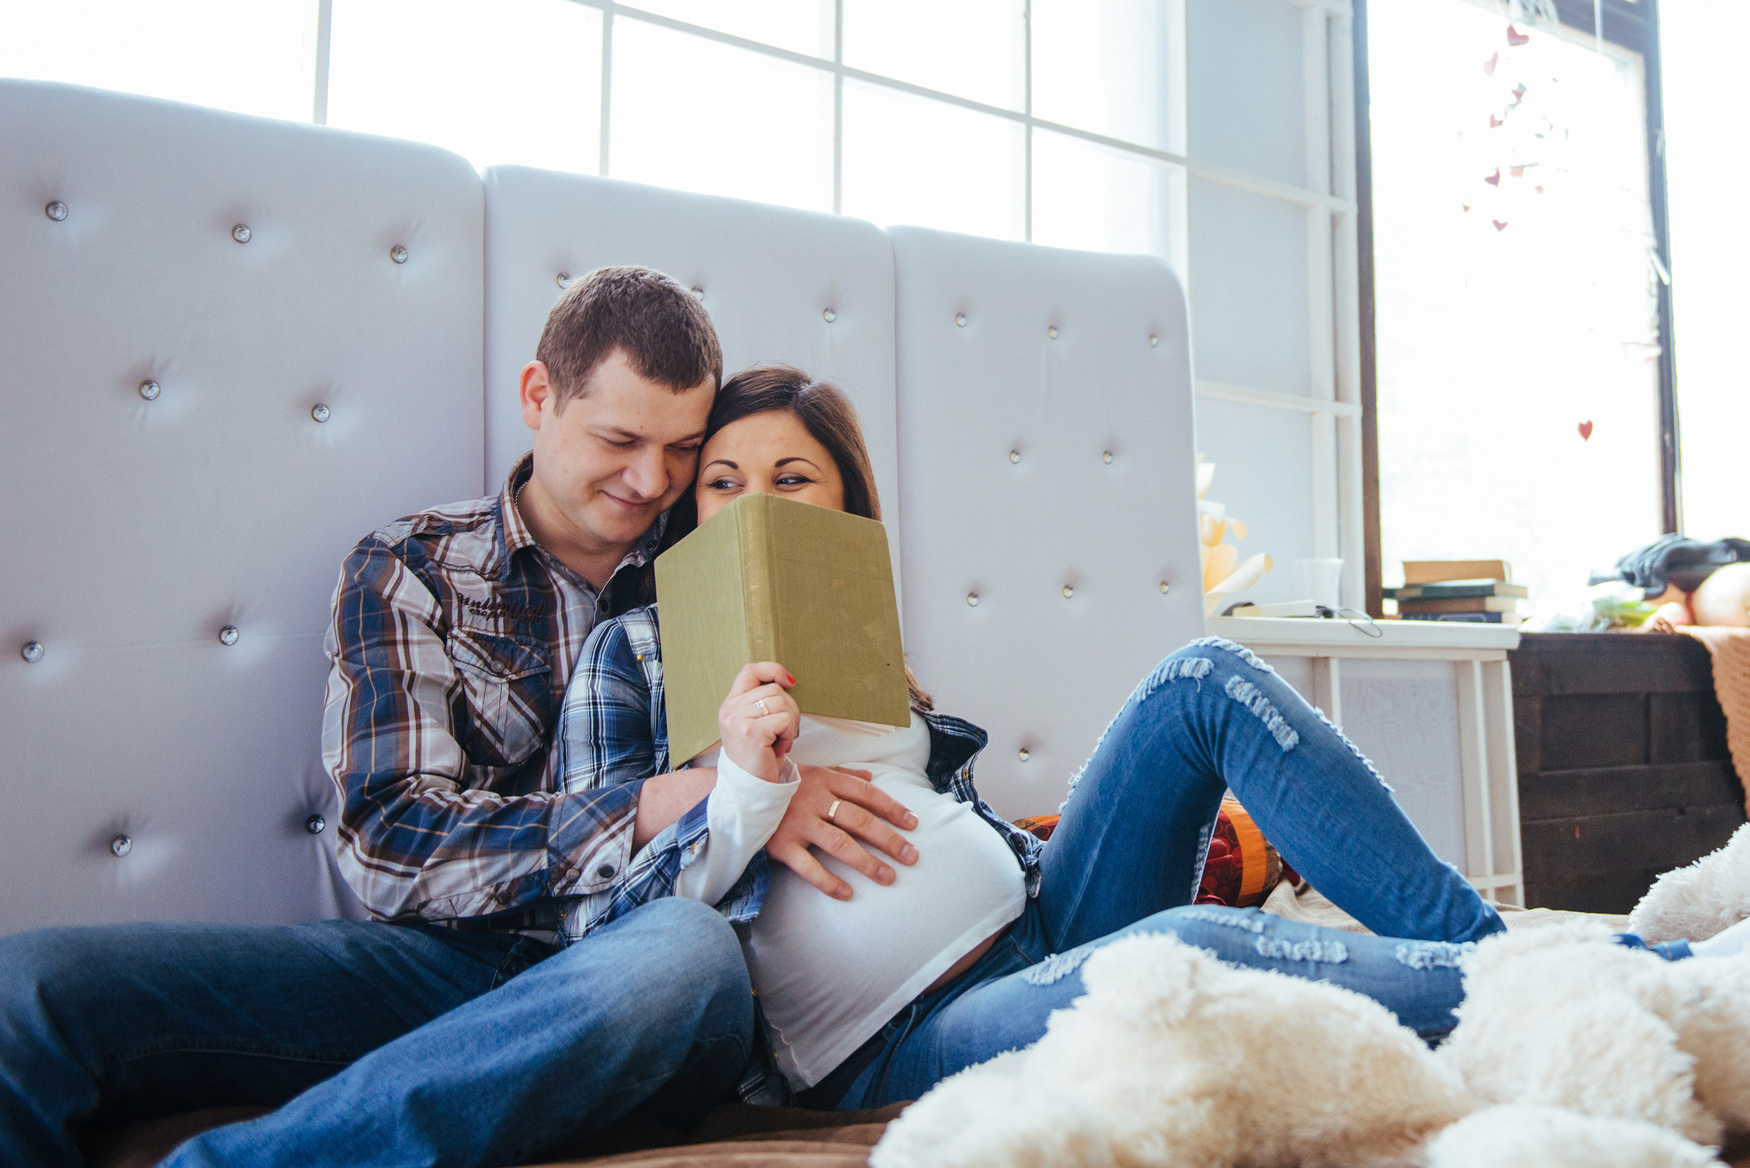 10 Of The Best Pregnancy Books